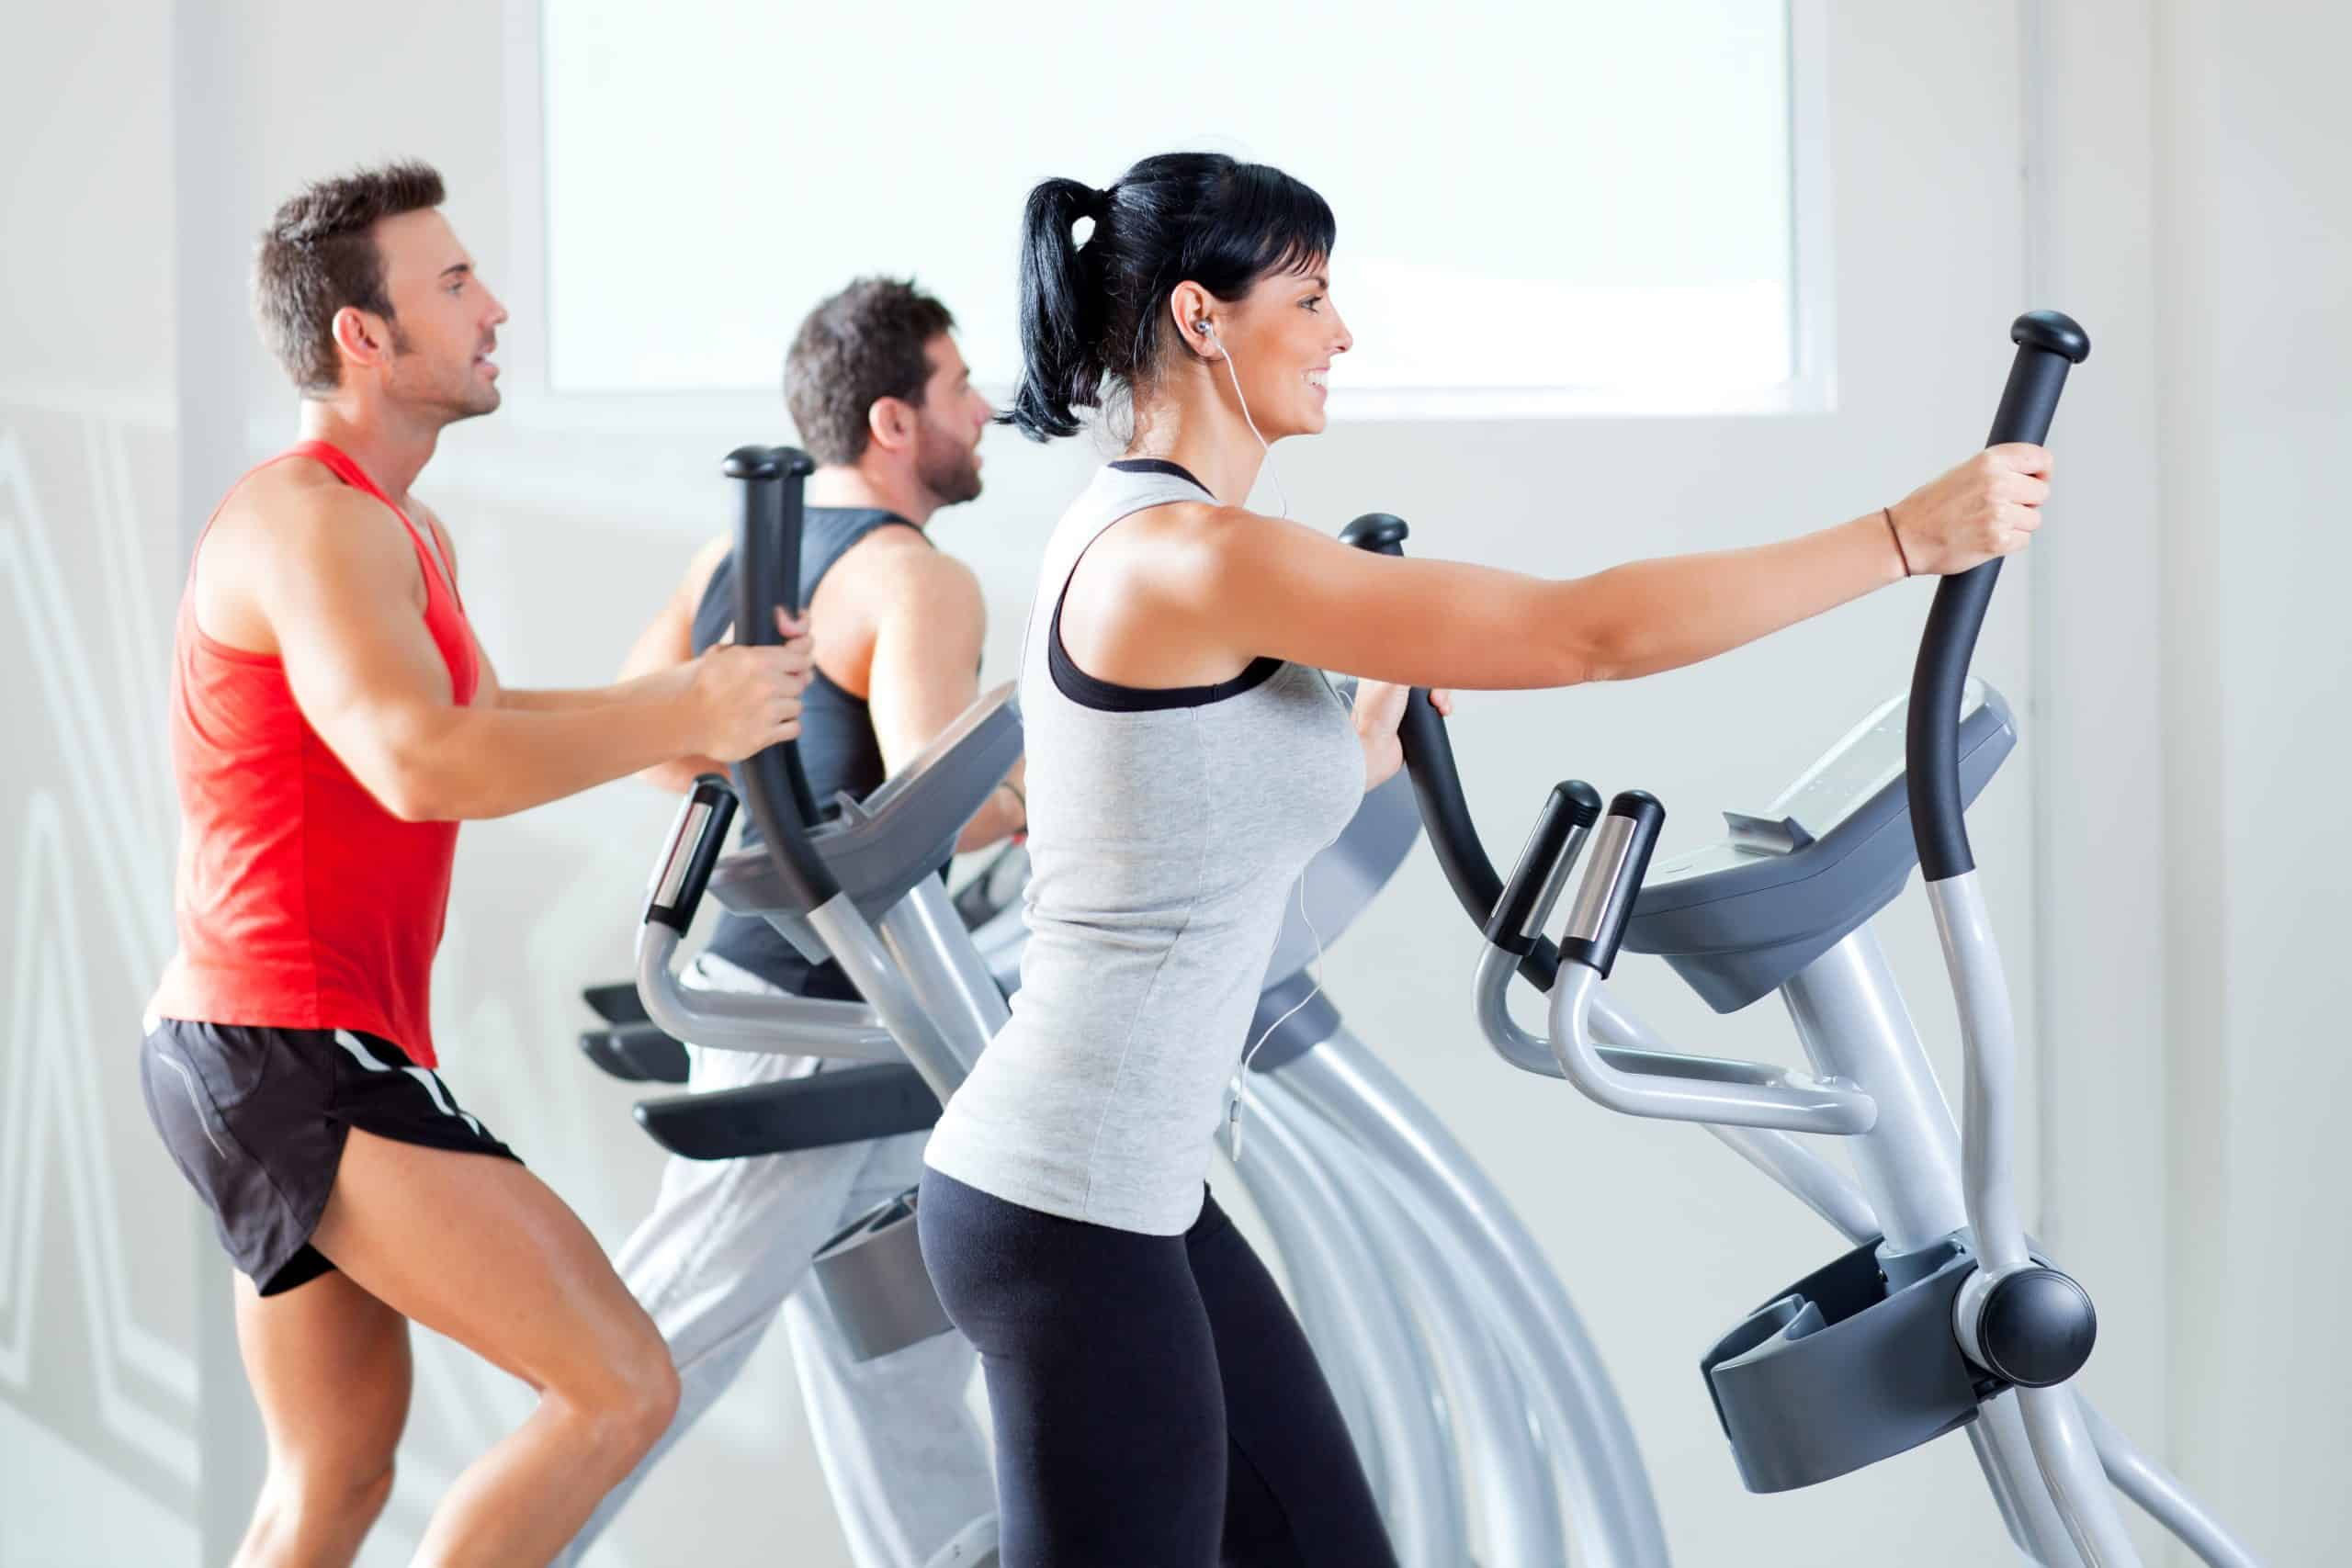 best elliptical exercise machines with 300lb weight limit & excellent stride length for a body workout